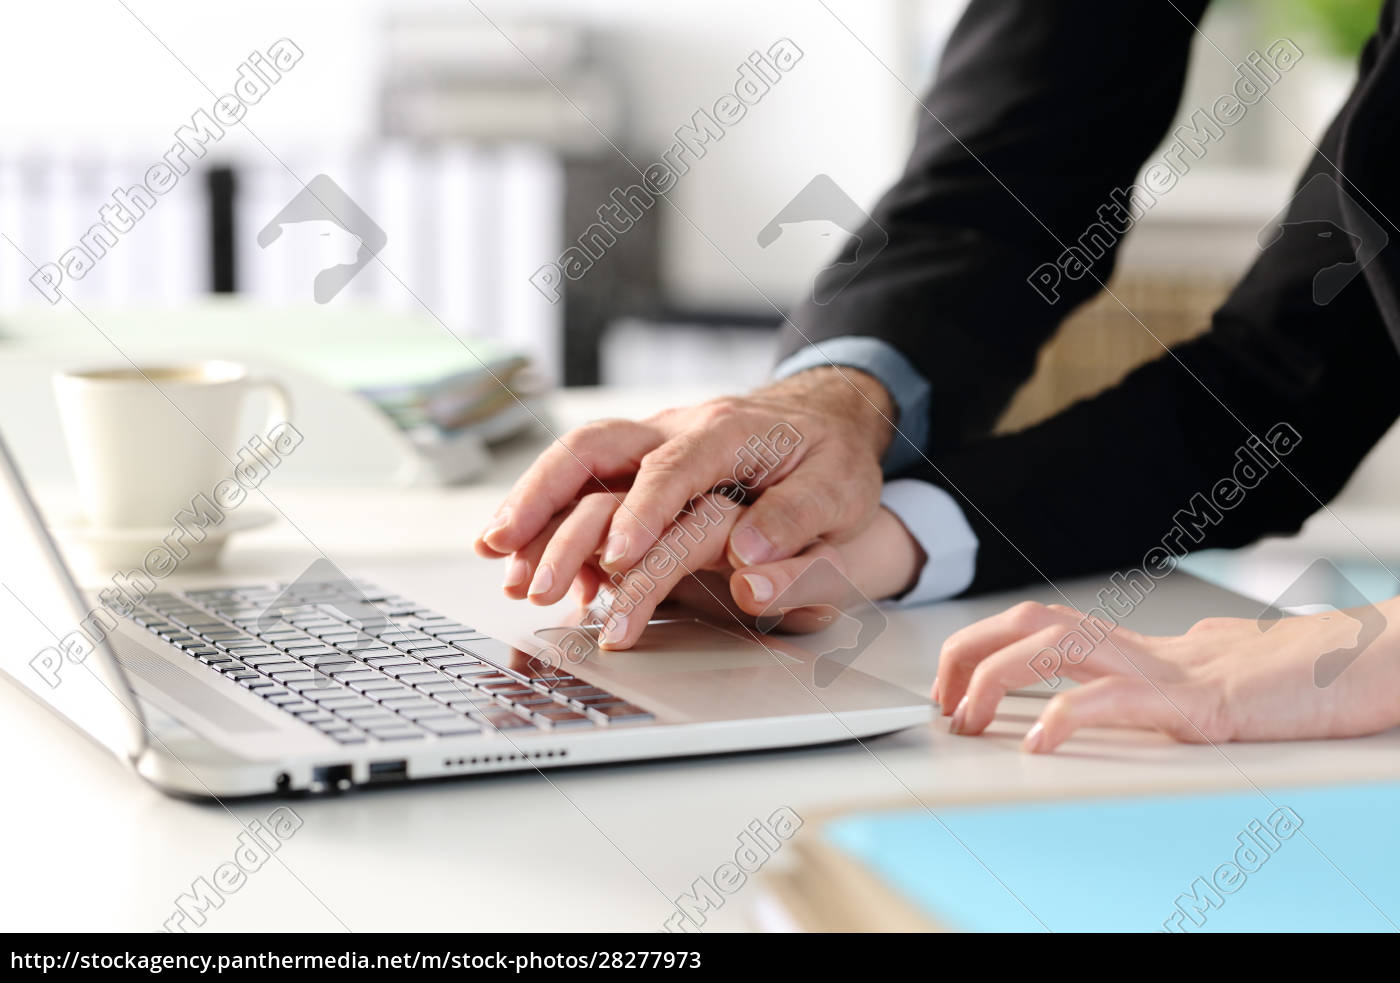 worker, hands, harassed, by, manager, at - 28277973